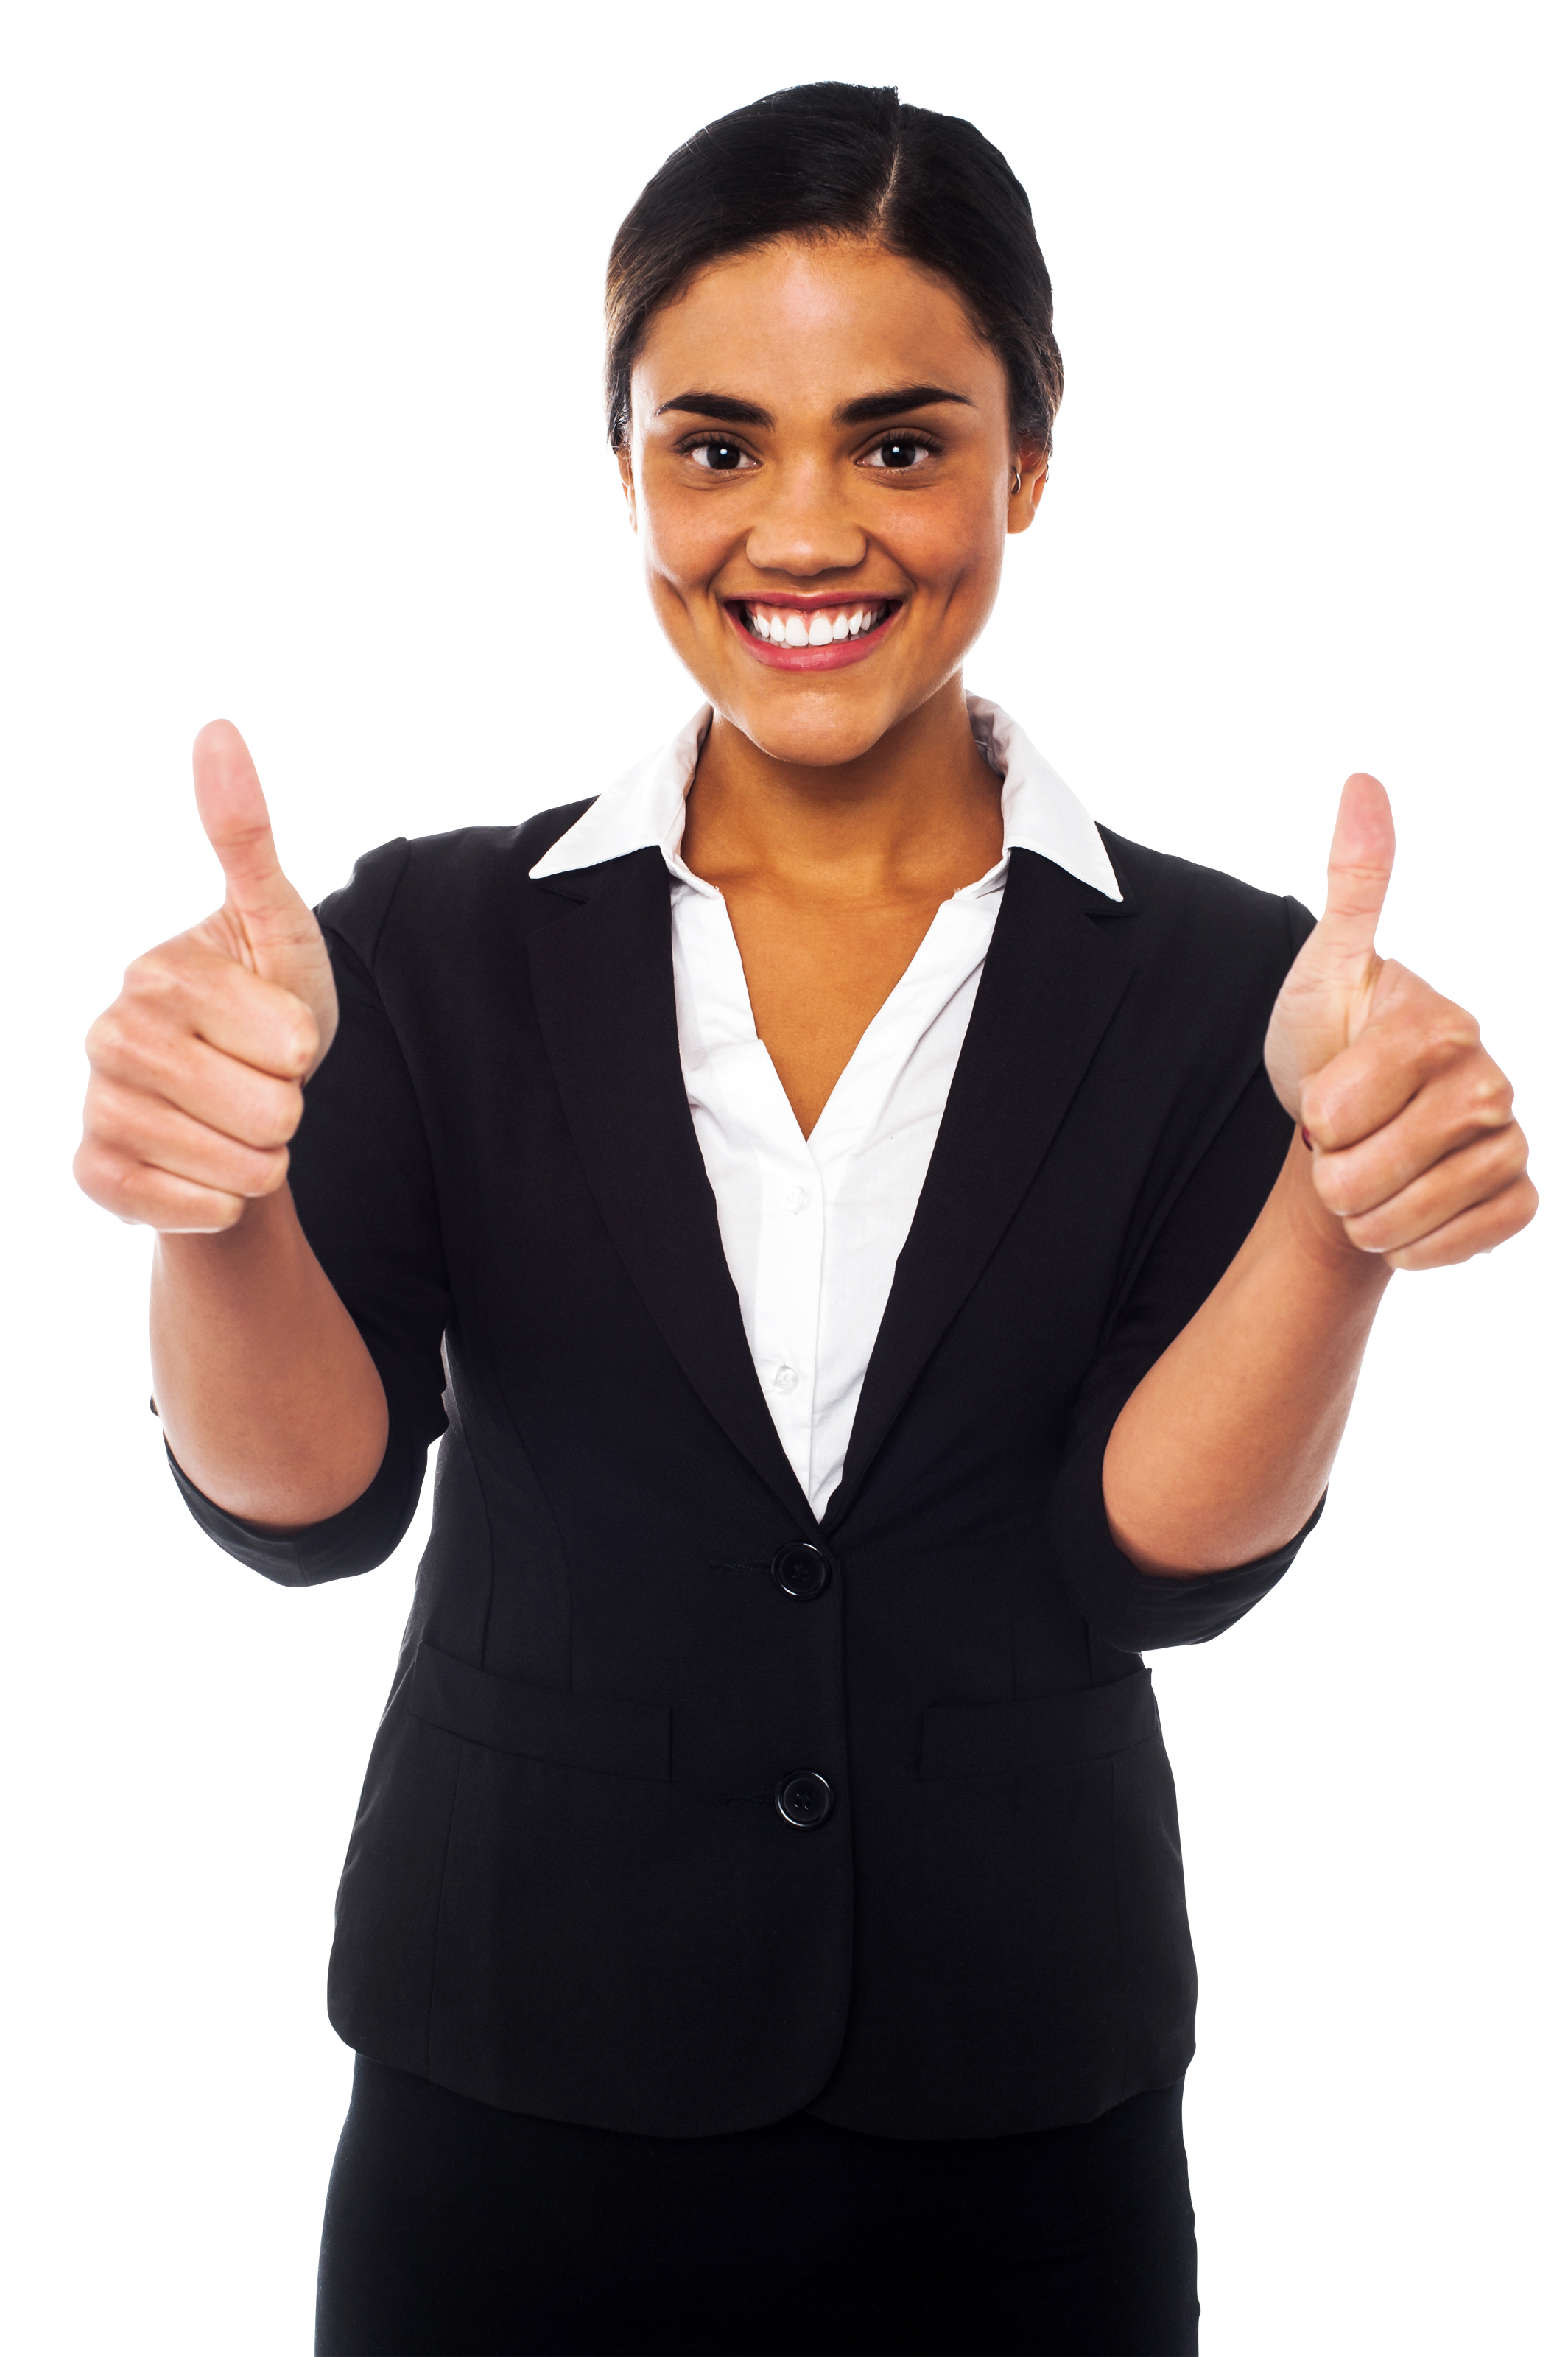 Women Pointing Thumbs Up